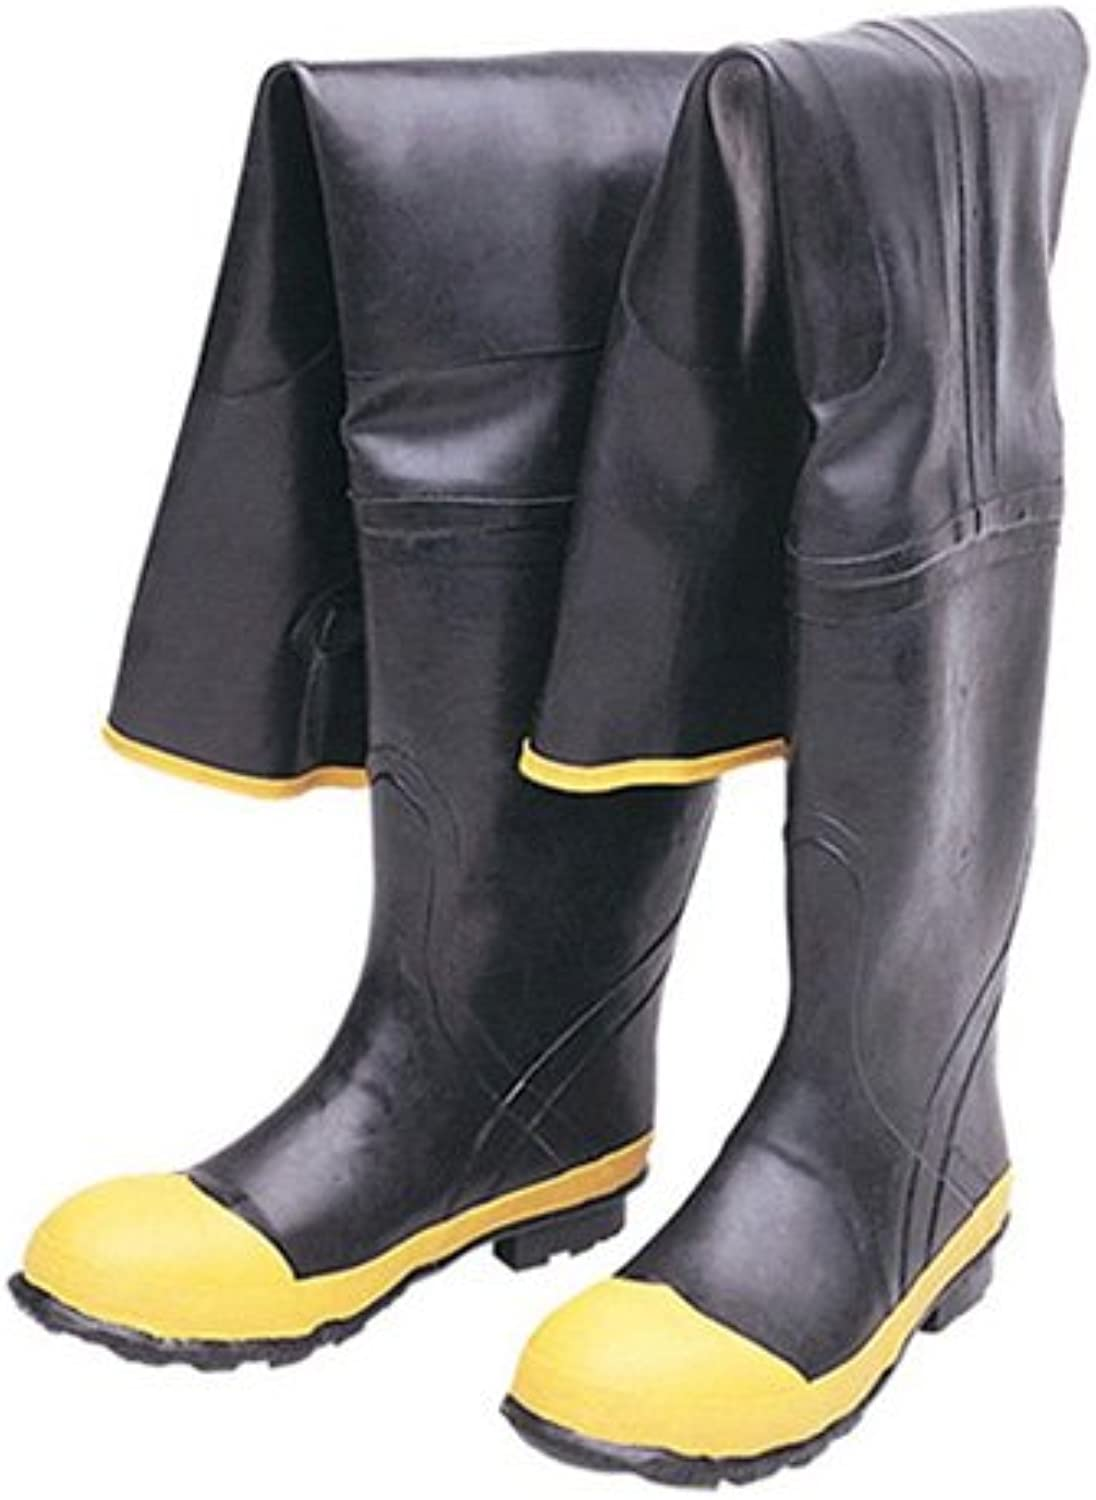 Liberty DuraWear Rubber Fabric Lined Predective Hip Wader Boot with Reinforced Knee and Front